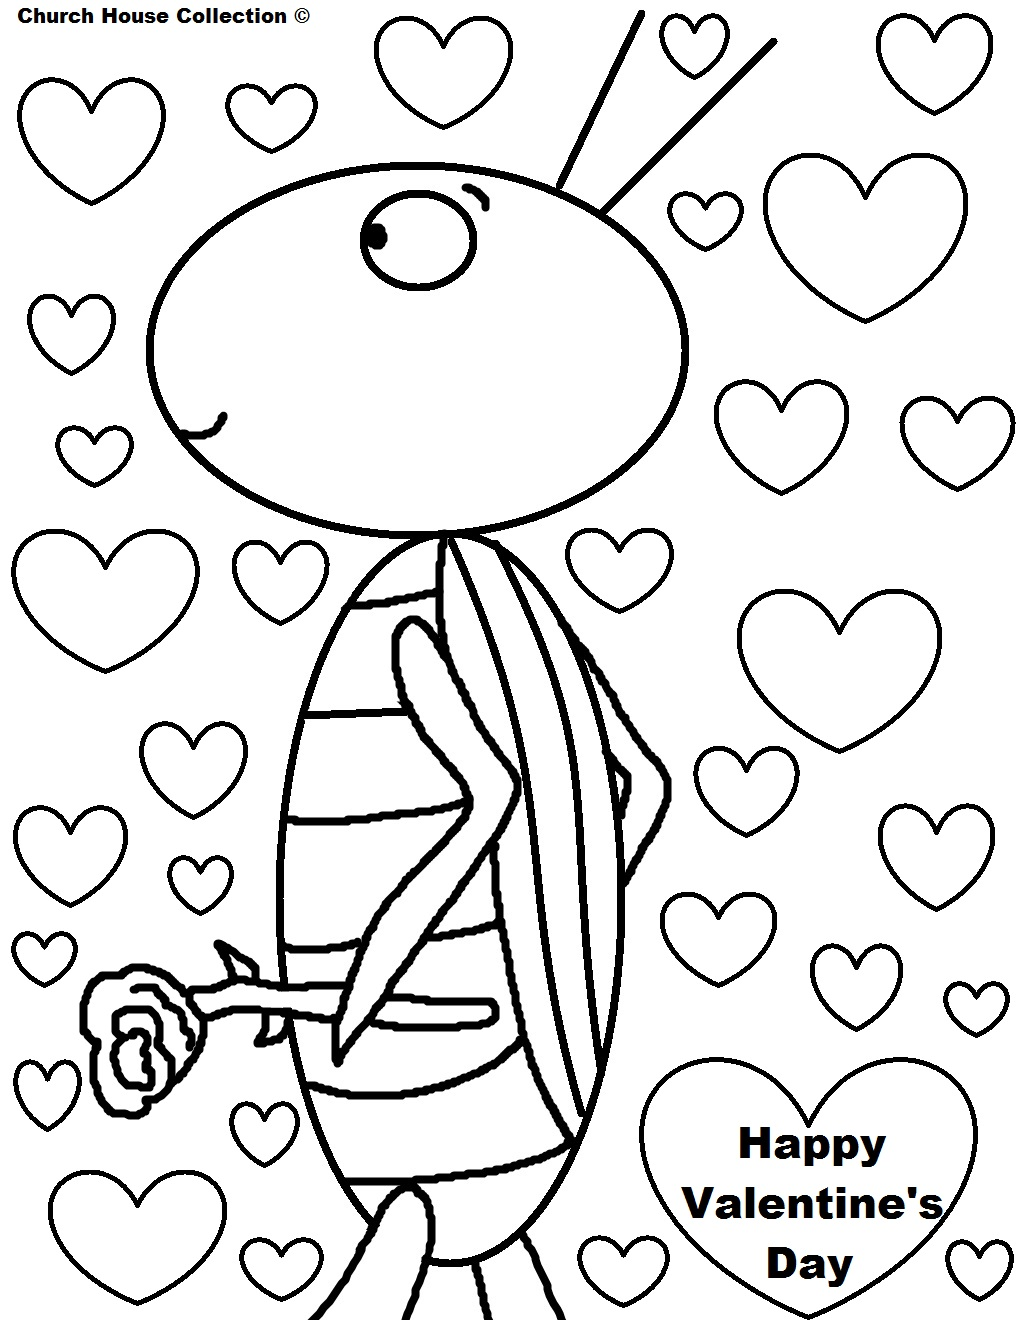 coloring pages valentinesday - photo#15